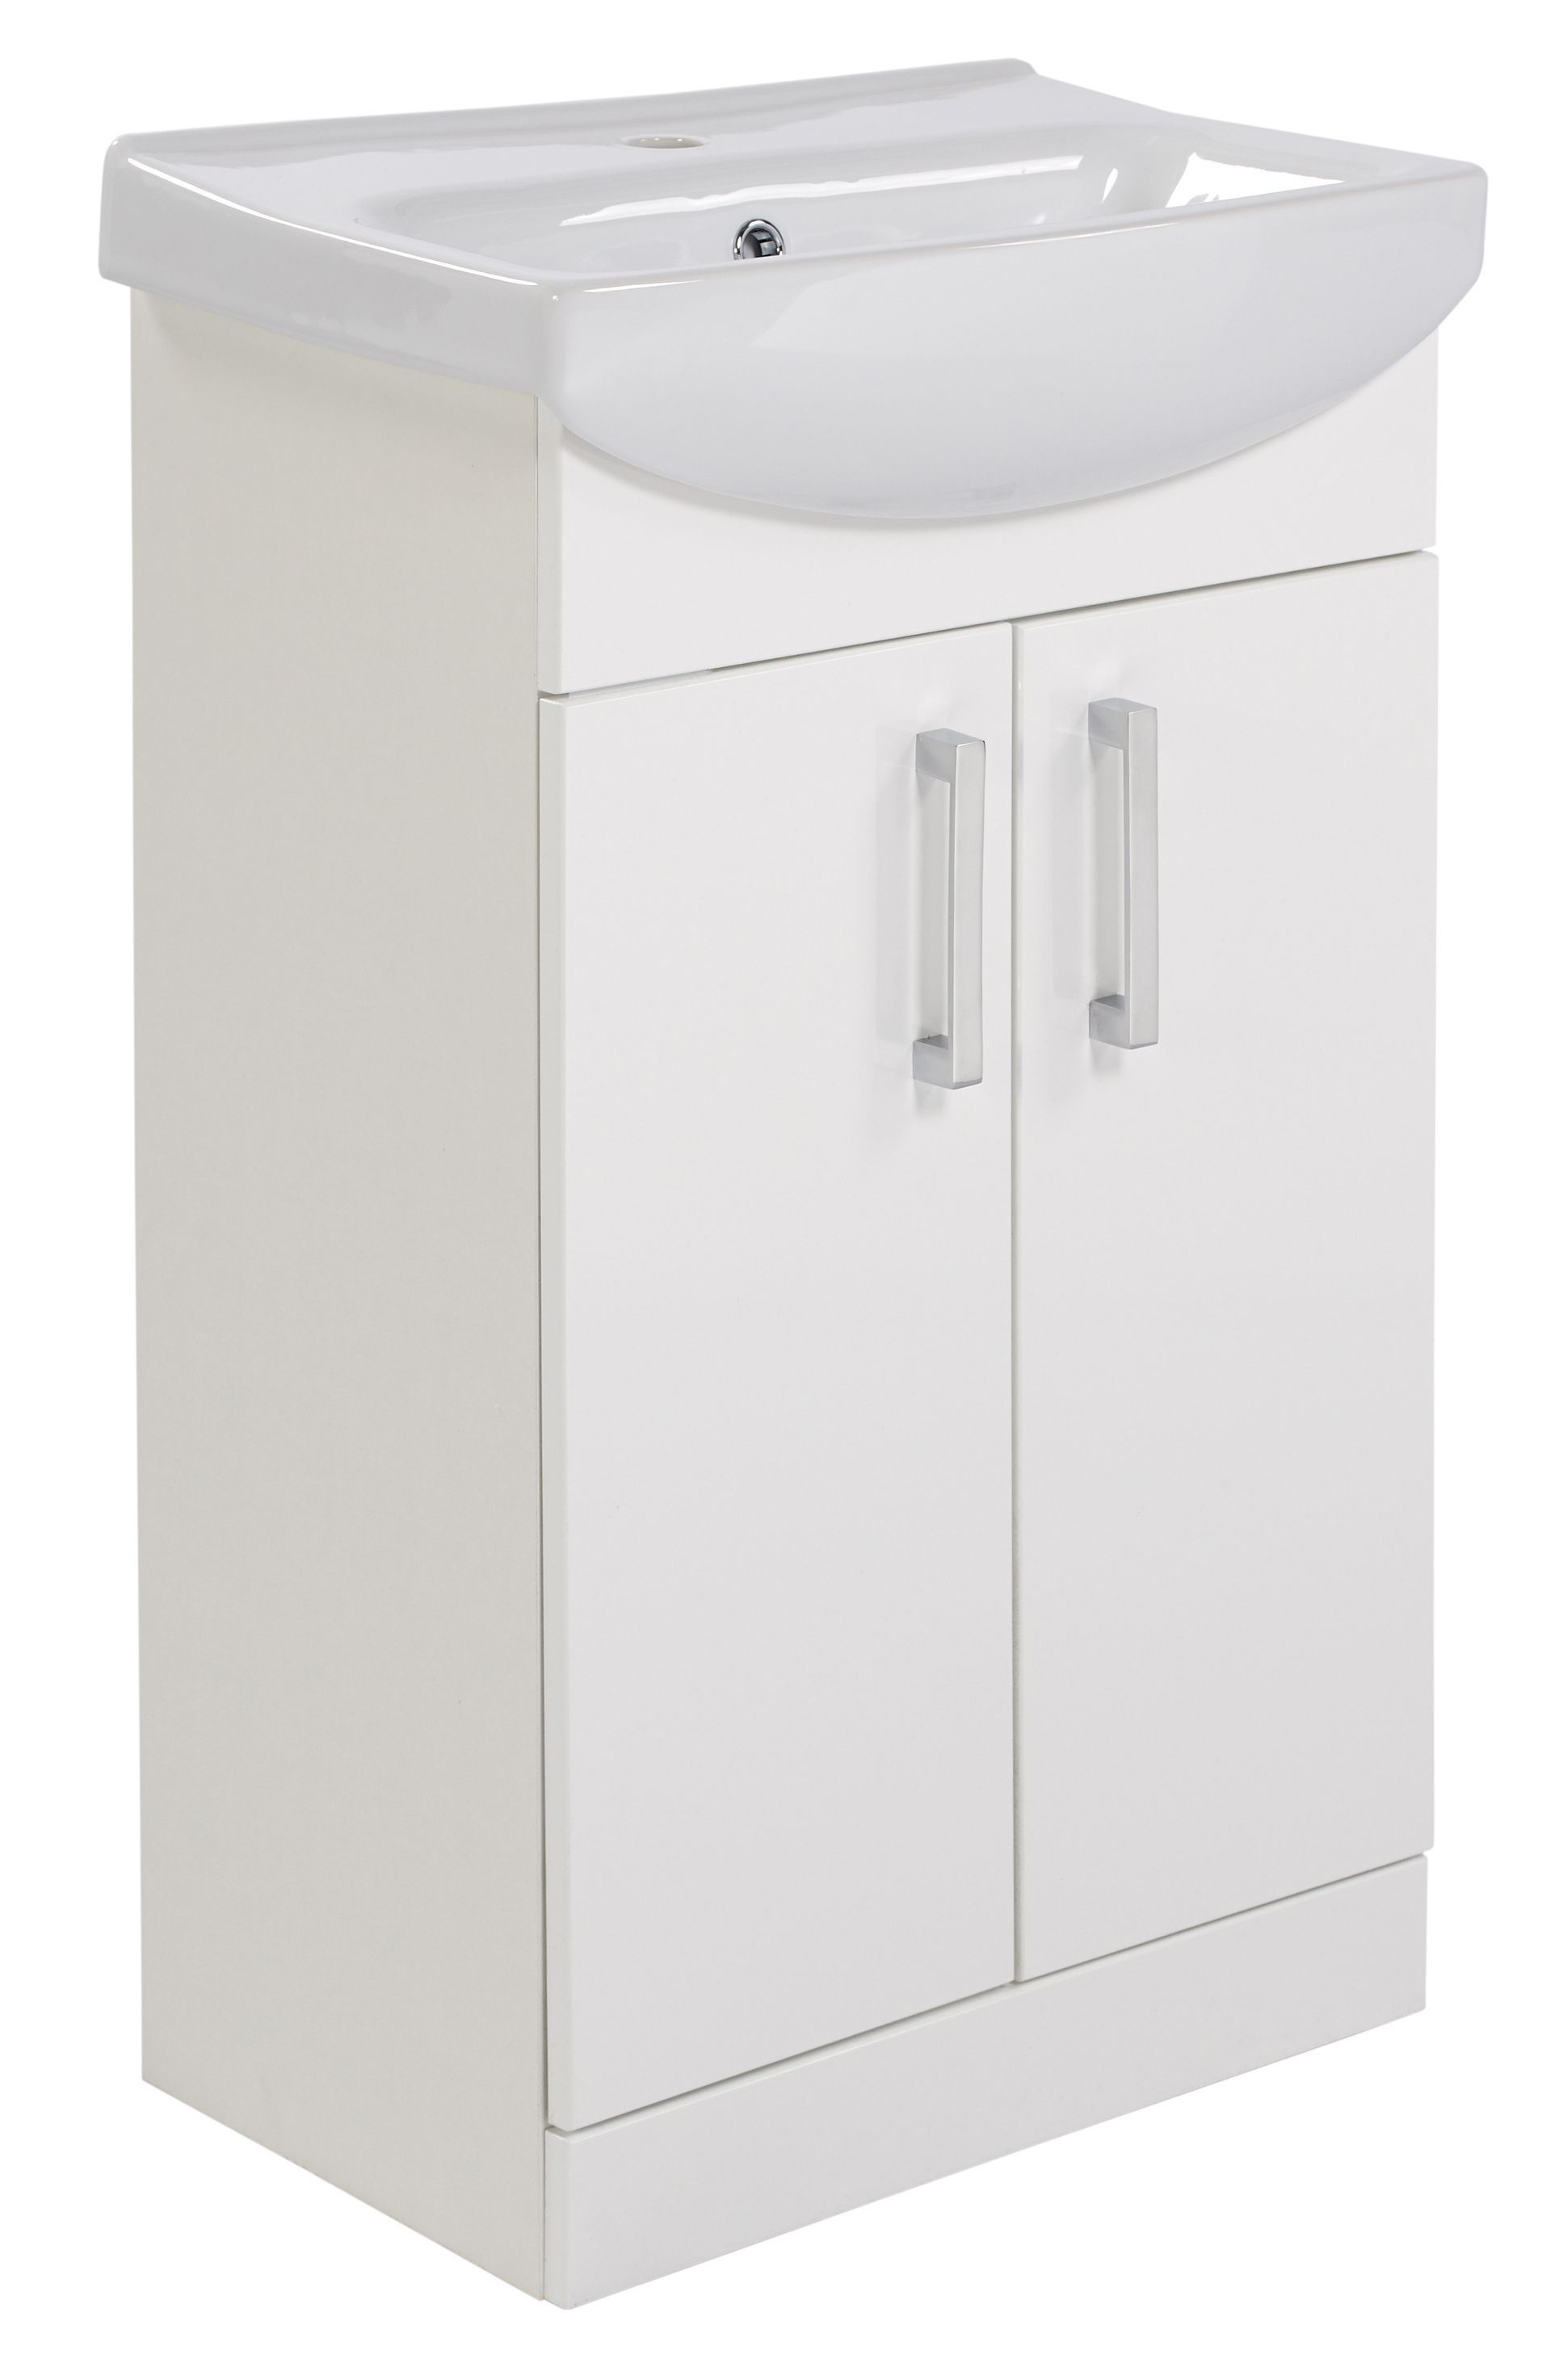 Bathroom Cabinets Uk Bq Ardenno Gloss White Vanity Unit Basin Set Departments Diy At Bq